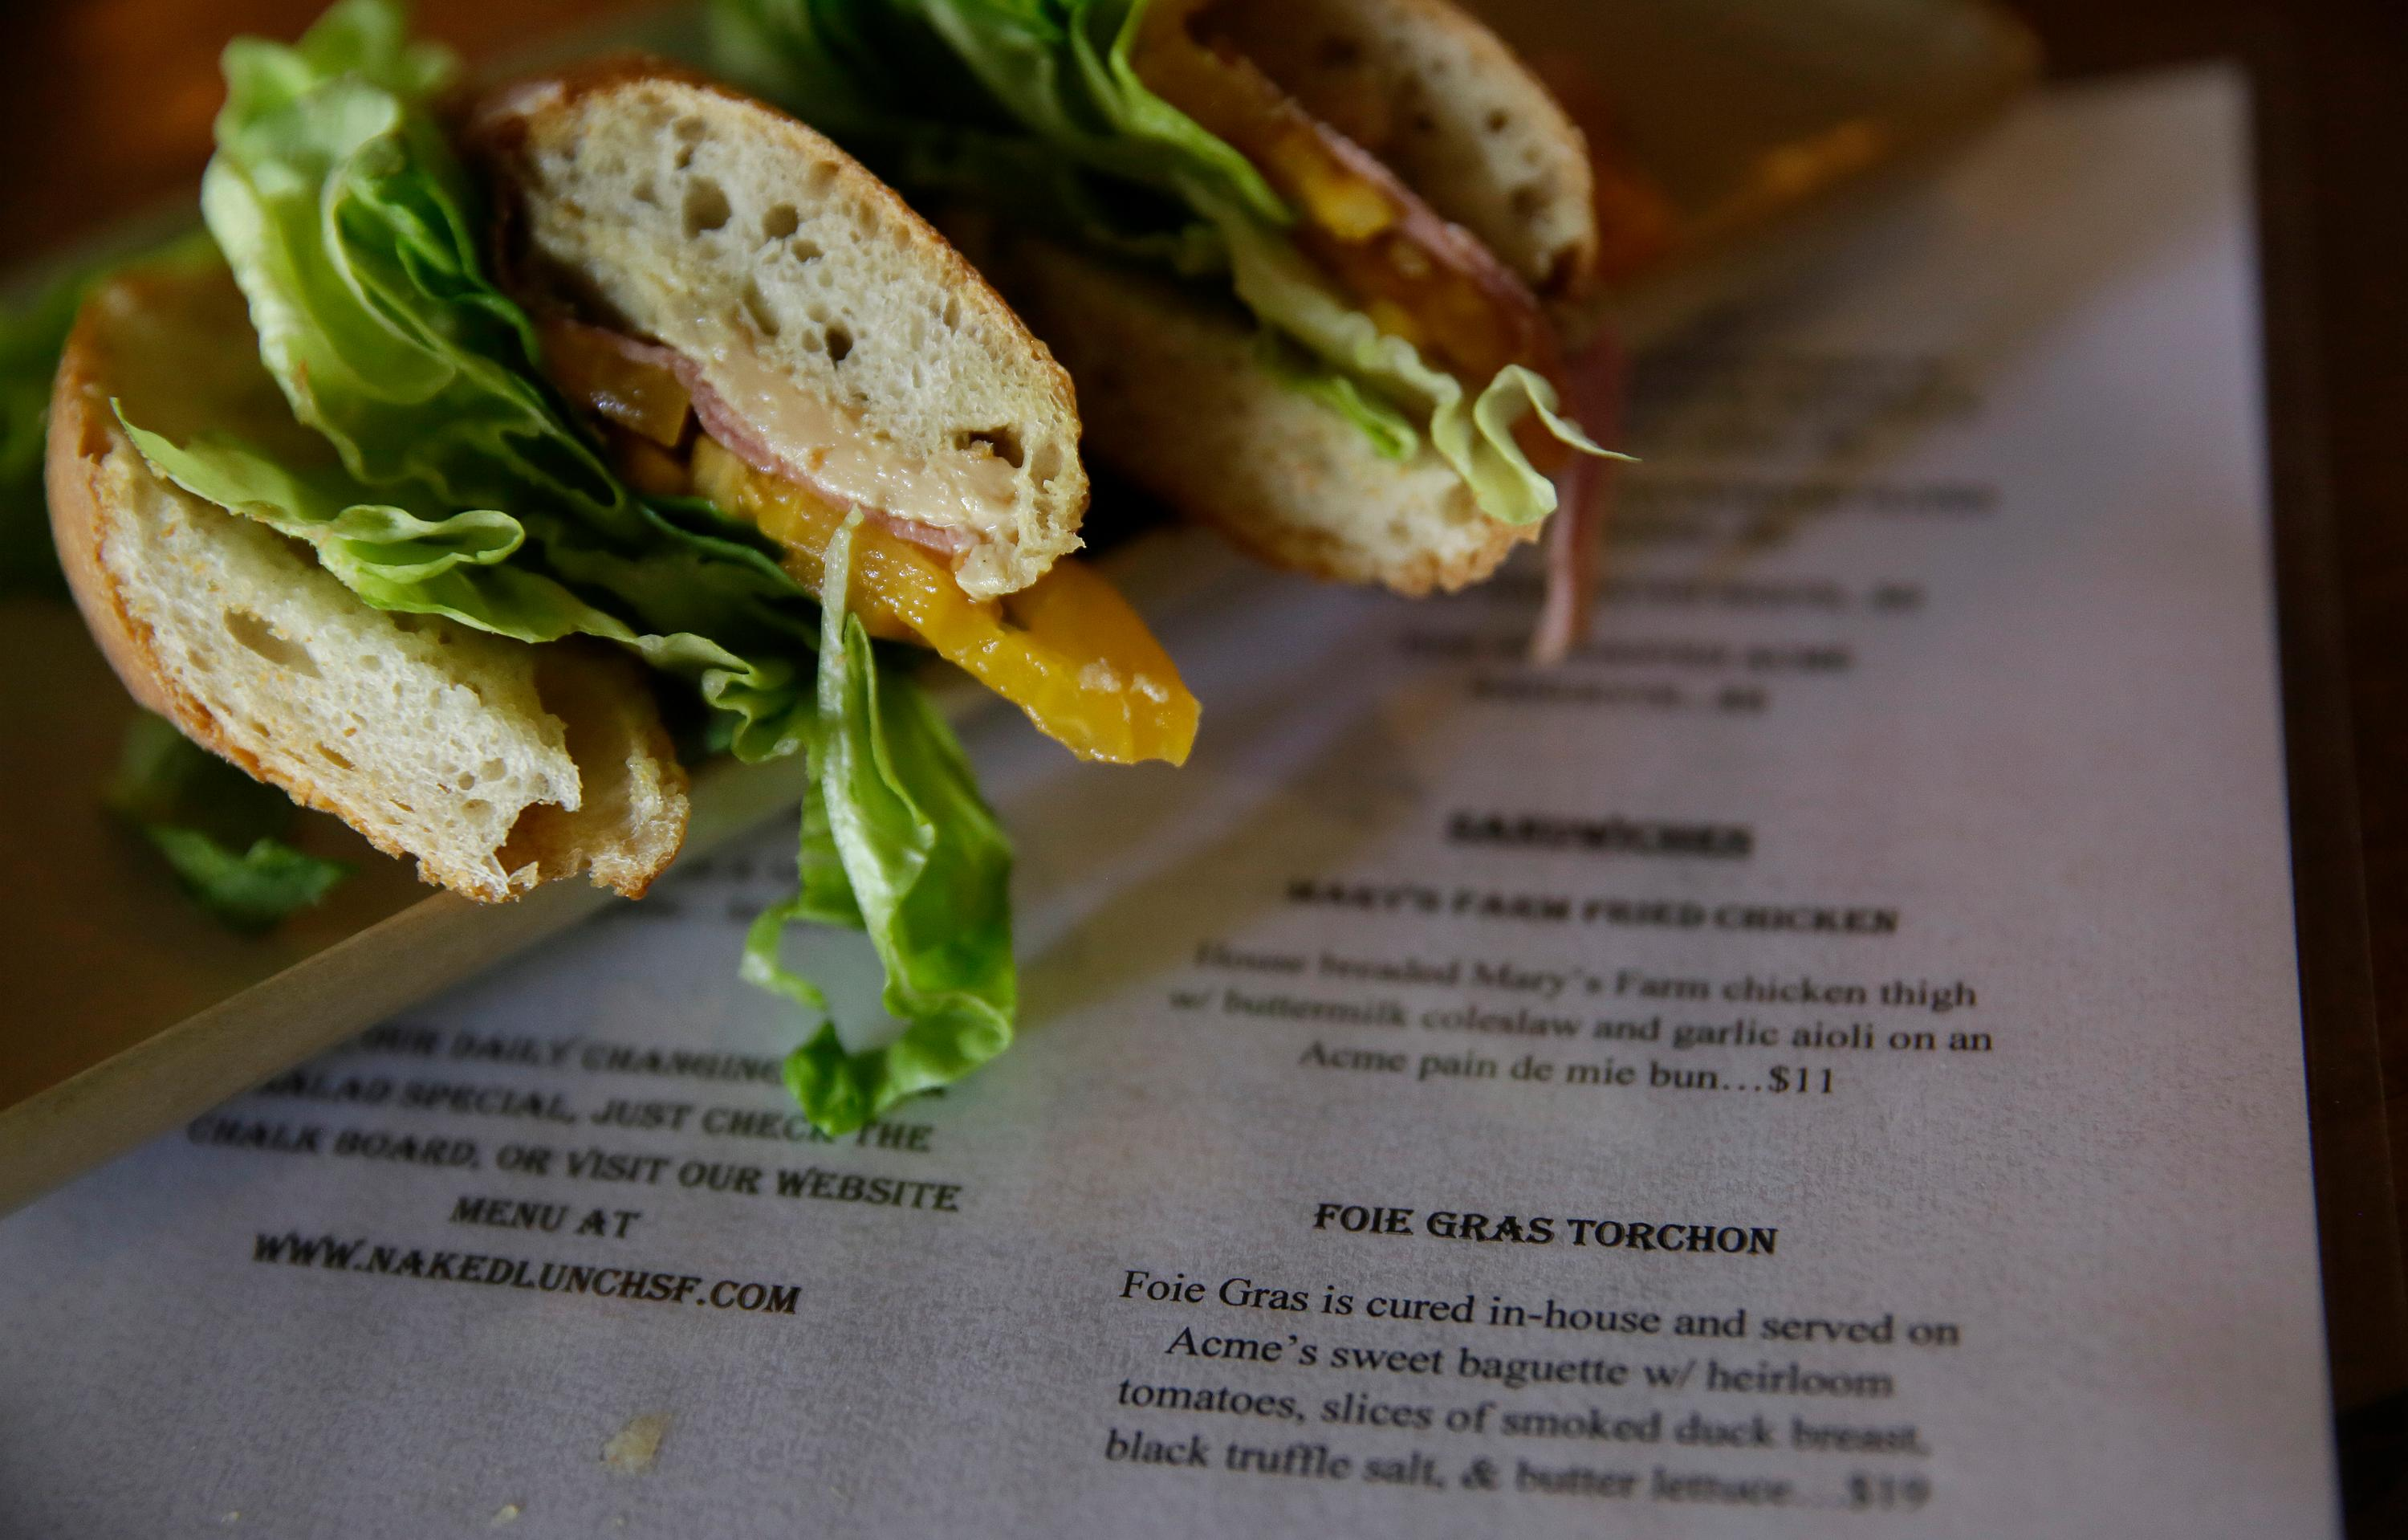 A Foie Gras Torchon sandwich is seen at the Naked Lunch restaurant Friday, Sept. 15, 2017, in San Francisco.  (AP Photo/Eric Risberg)